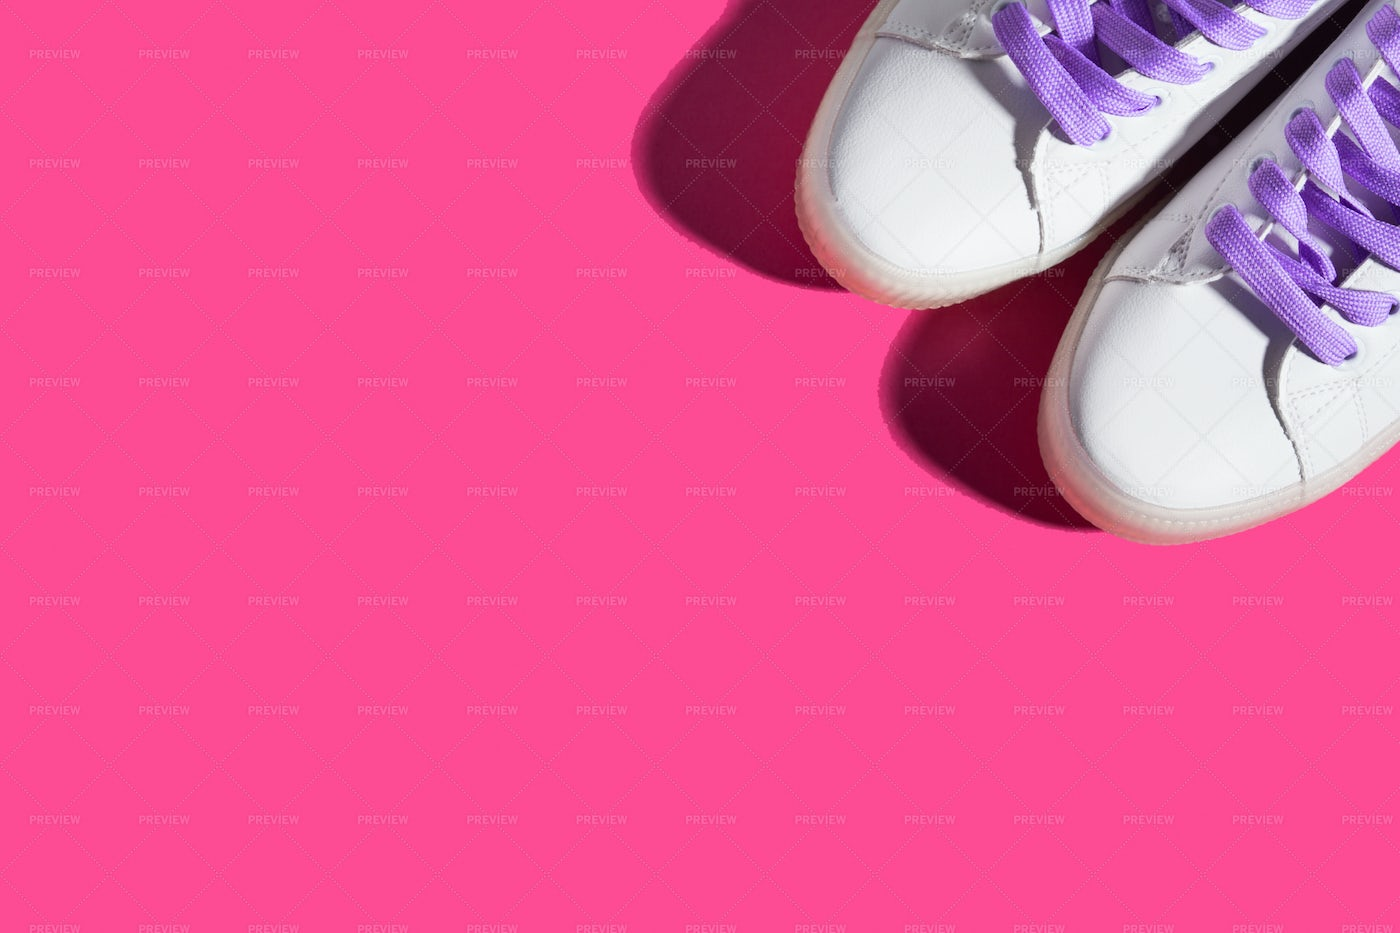 Pink Background With Sneakers: Stock Photos